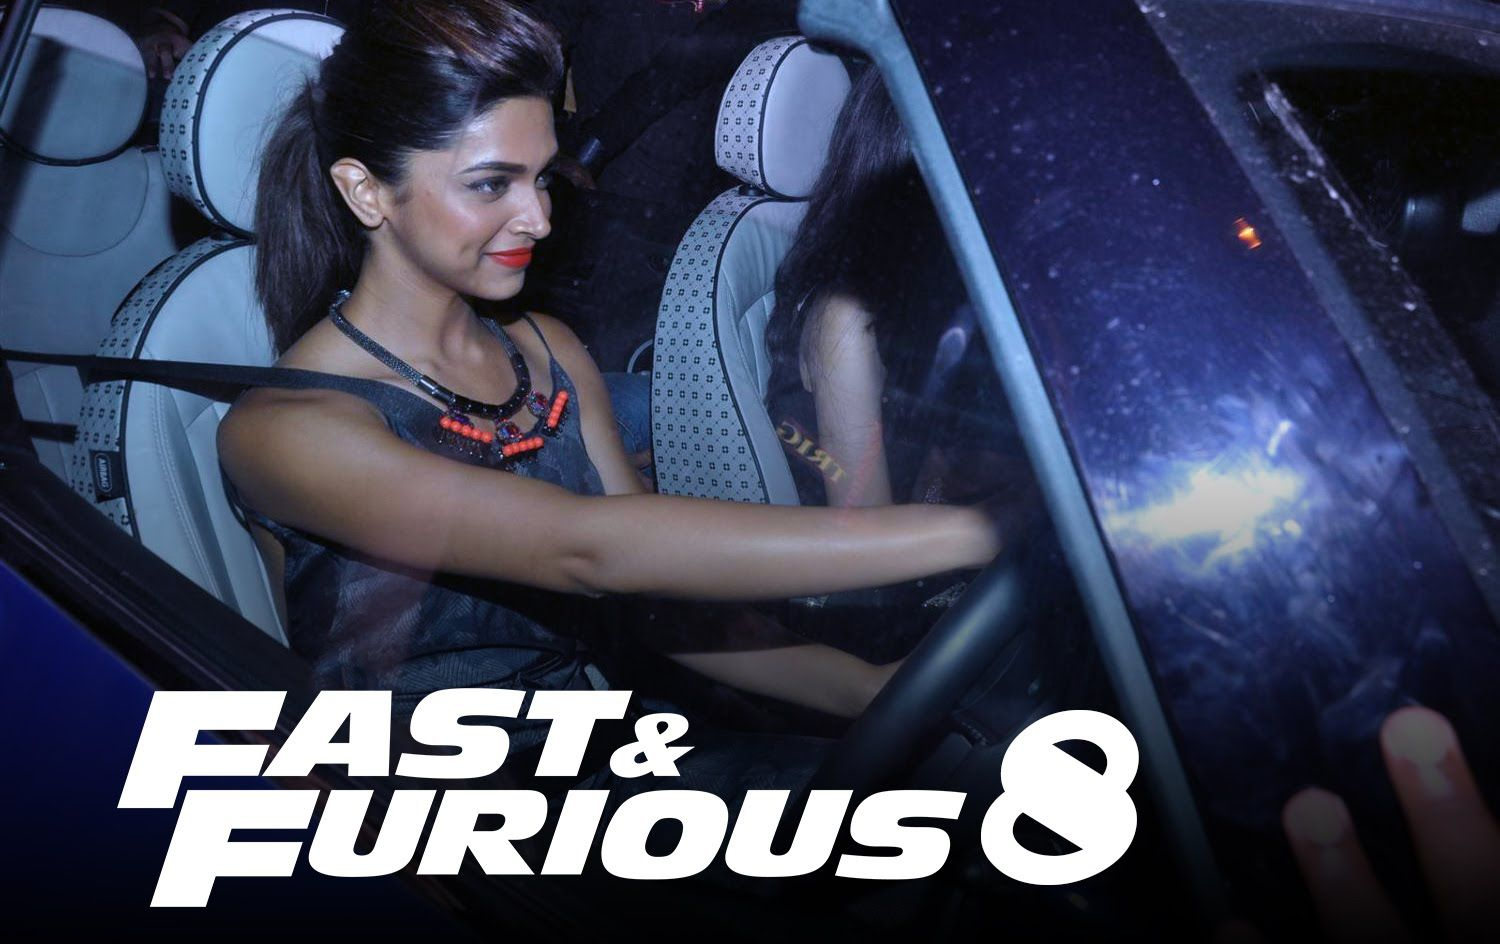 fast and furious 8 torrentz2 download